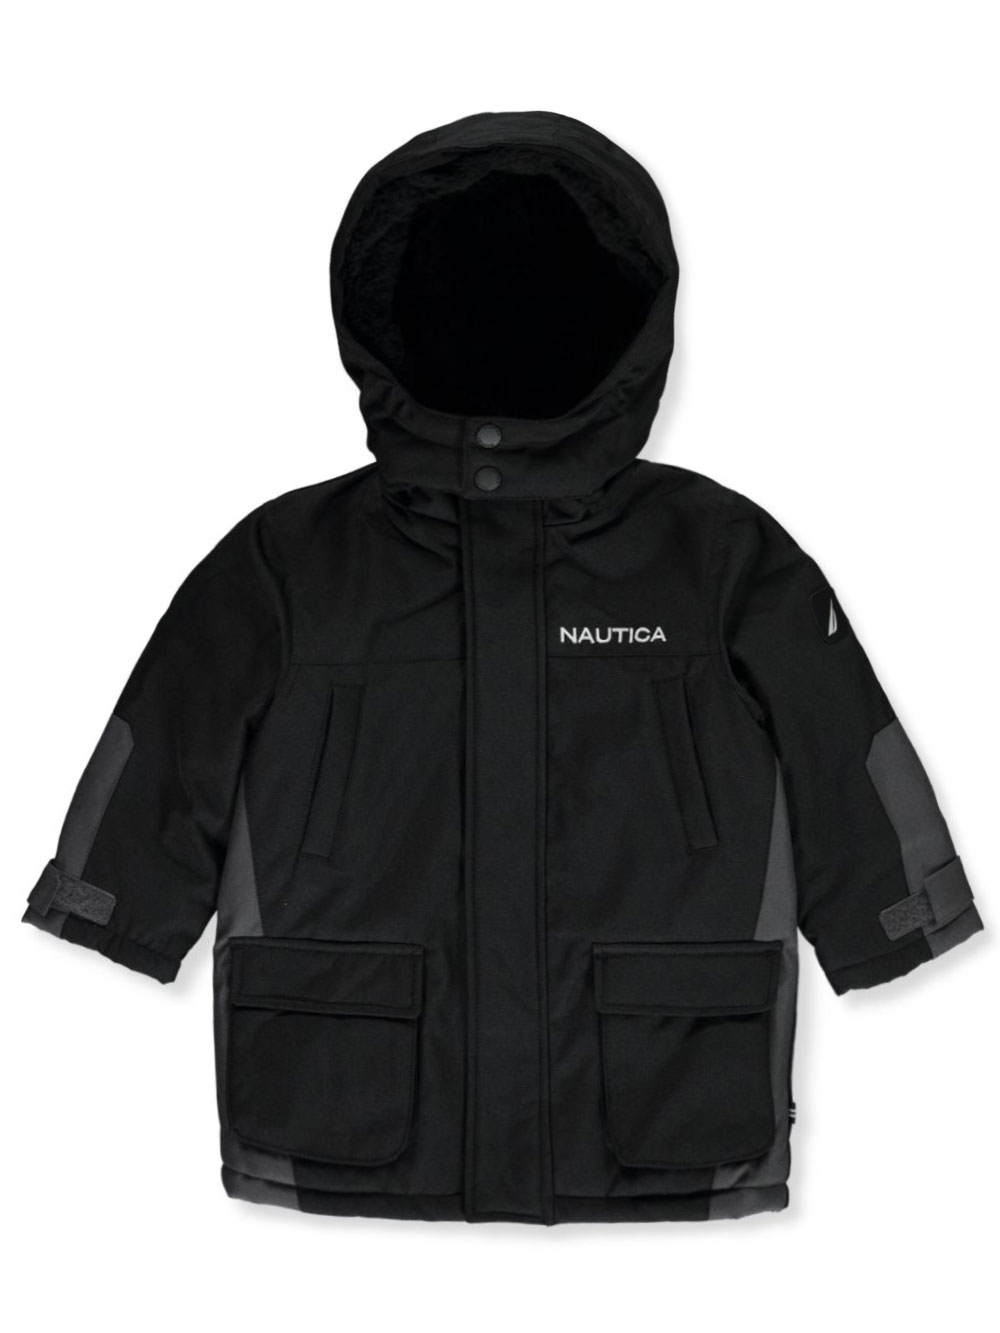 Nautica Boys Quilted Full Zip Baseball Style Sweater